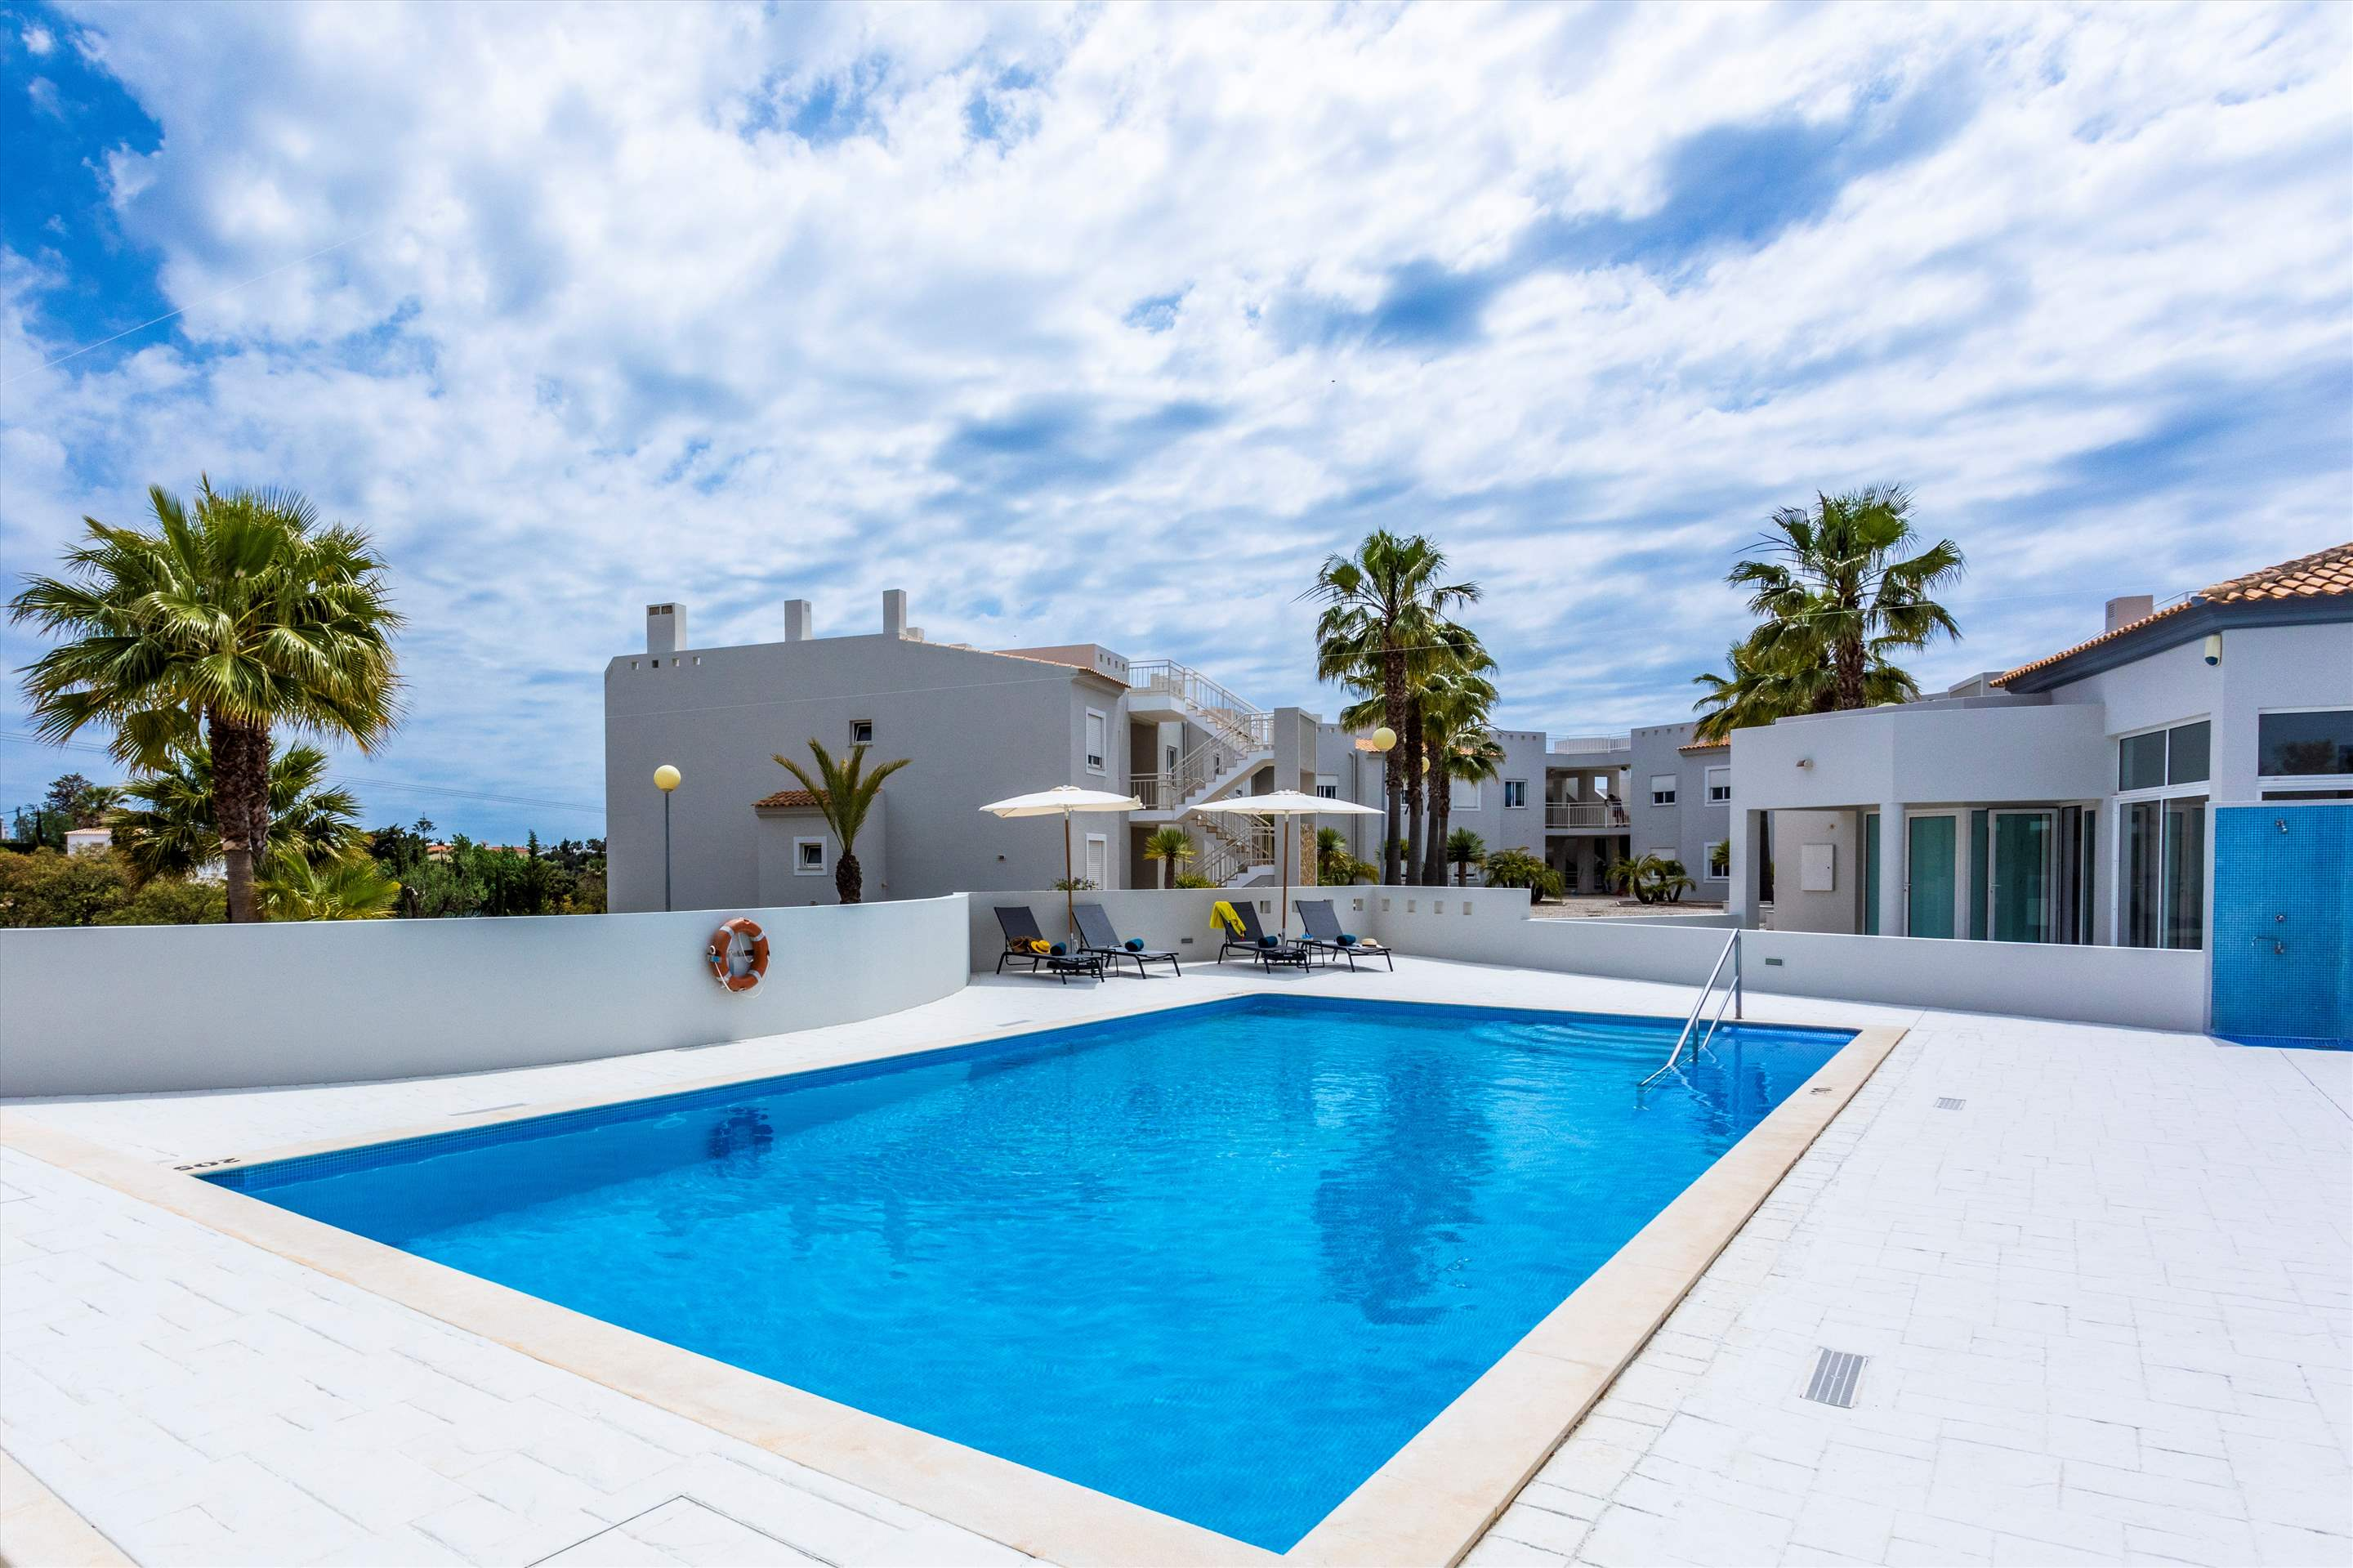 Placid Village, Three Bedroom Apartment, 3 bedroom apartment in Carvoeiro Area, Algarve